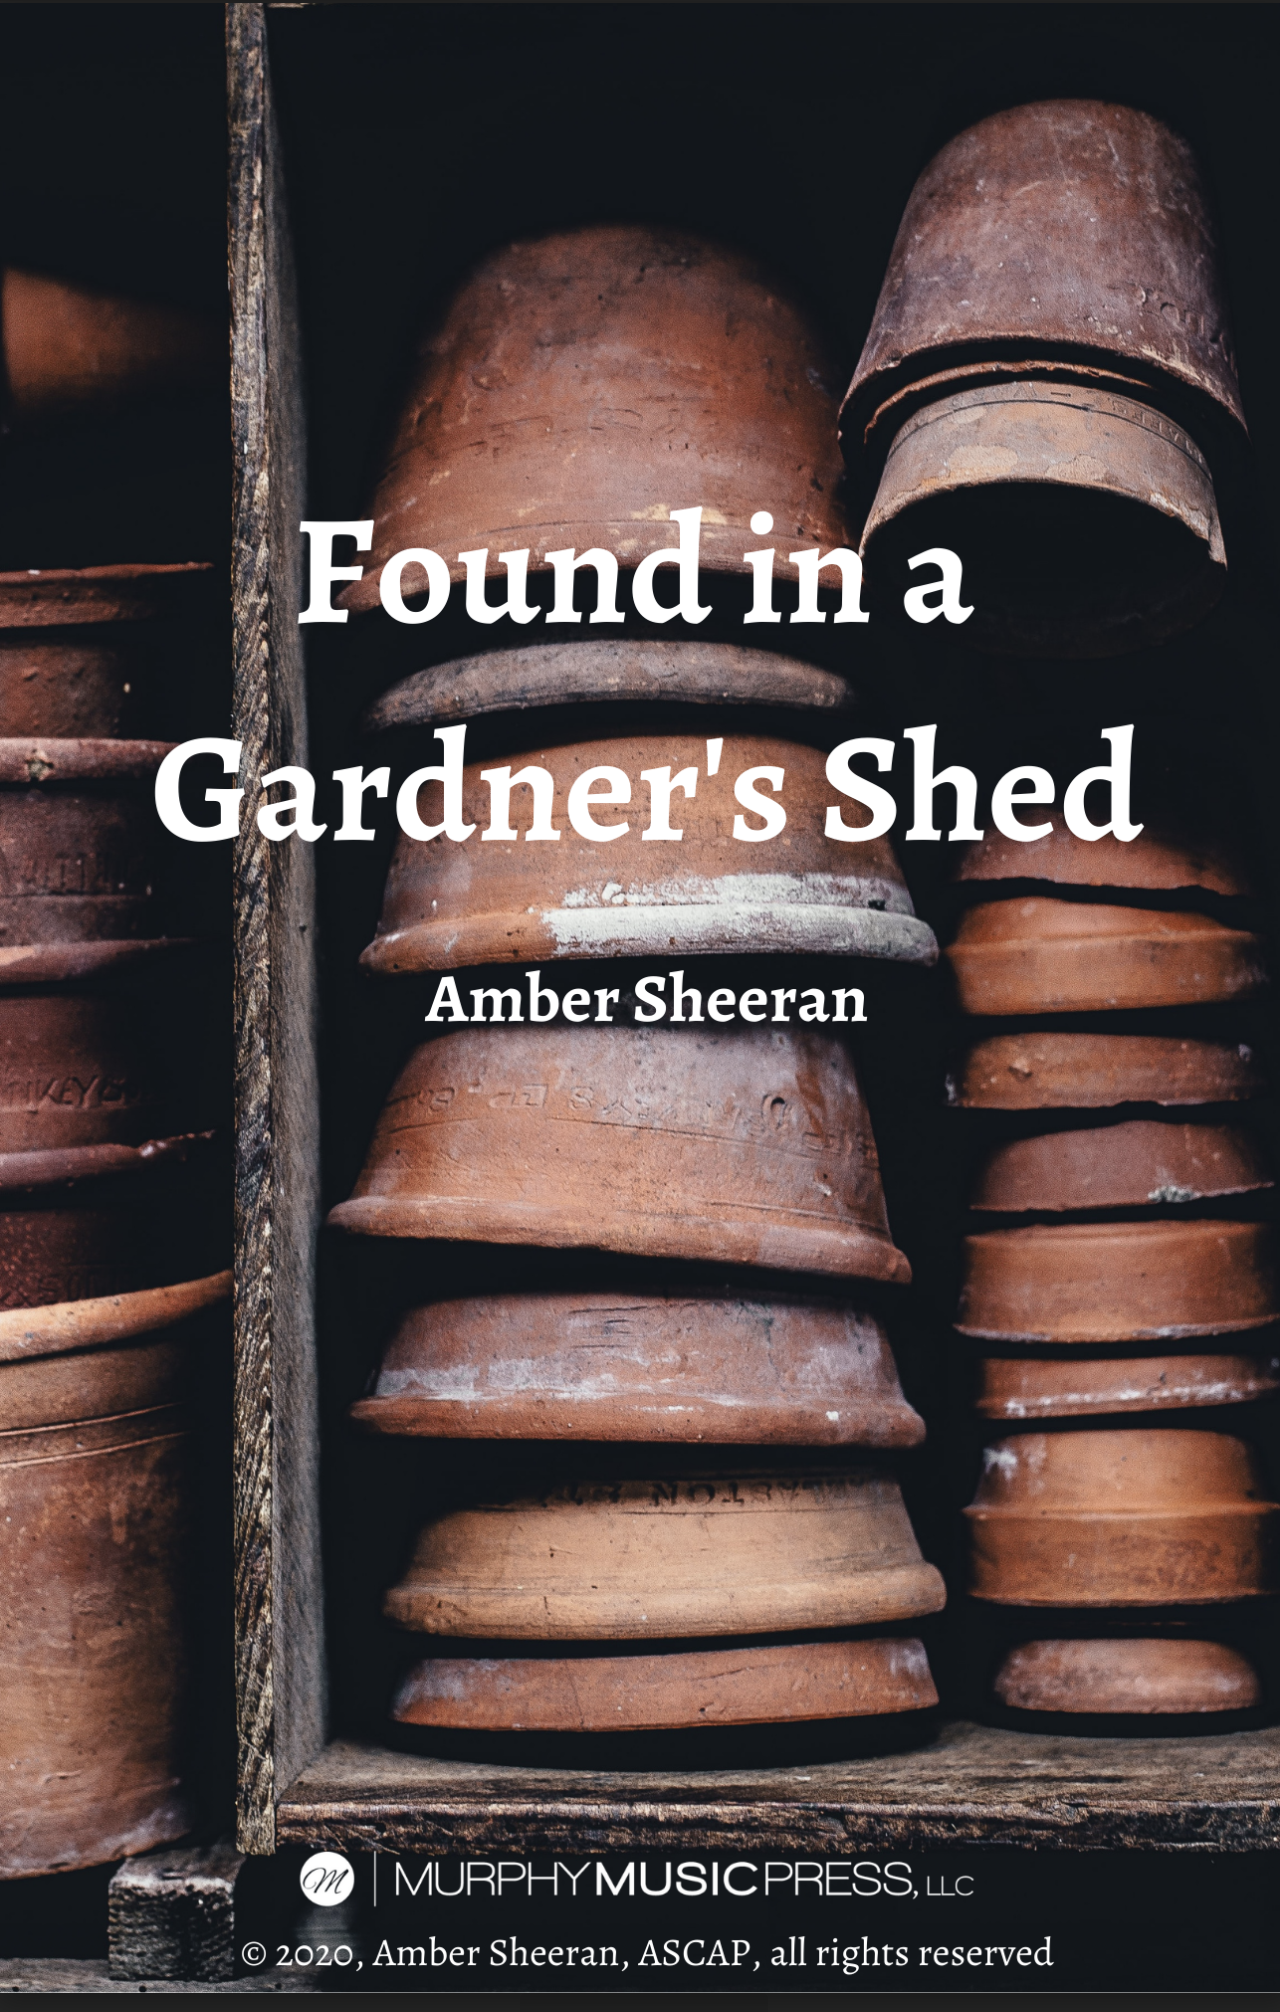 Found In A Gardener's Shed by Amber Sheeran